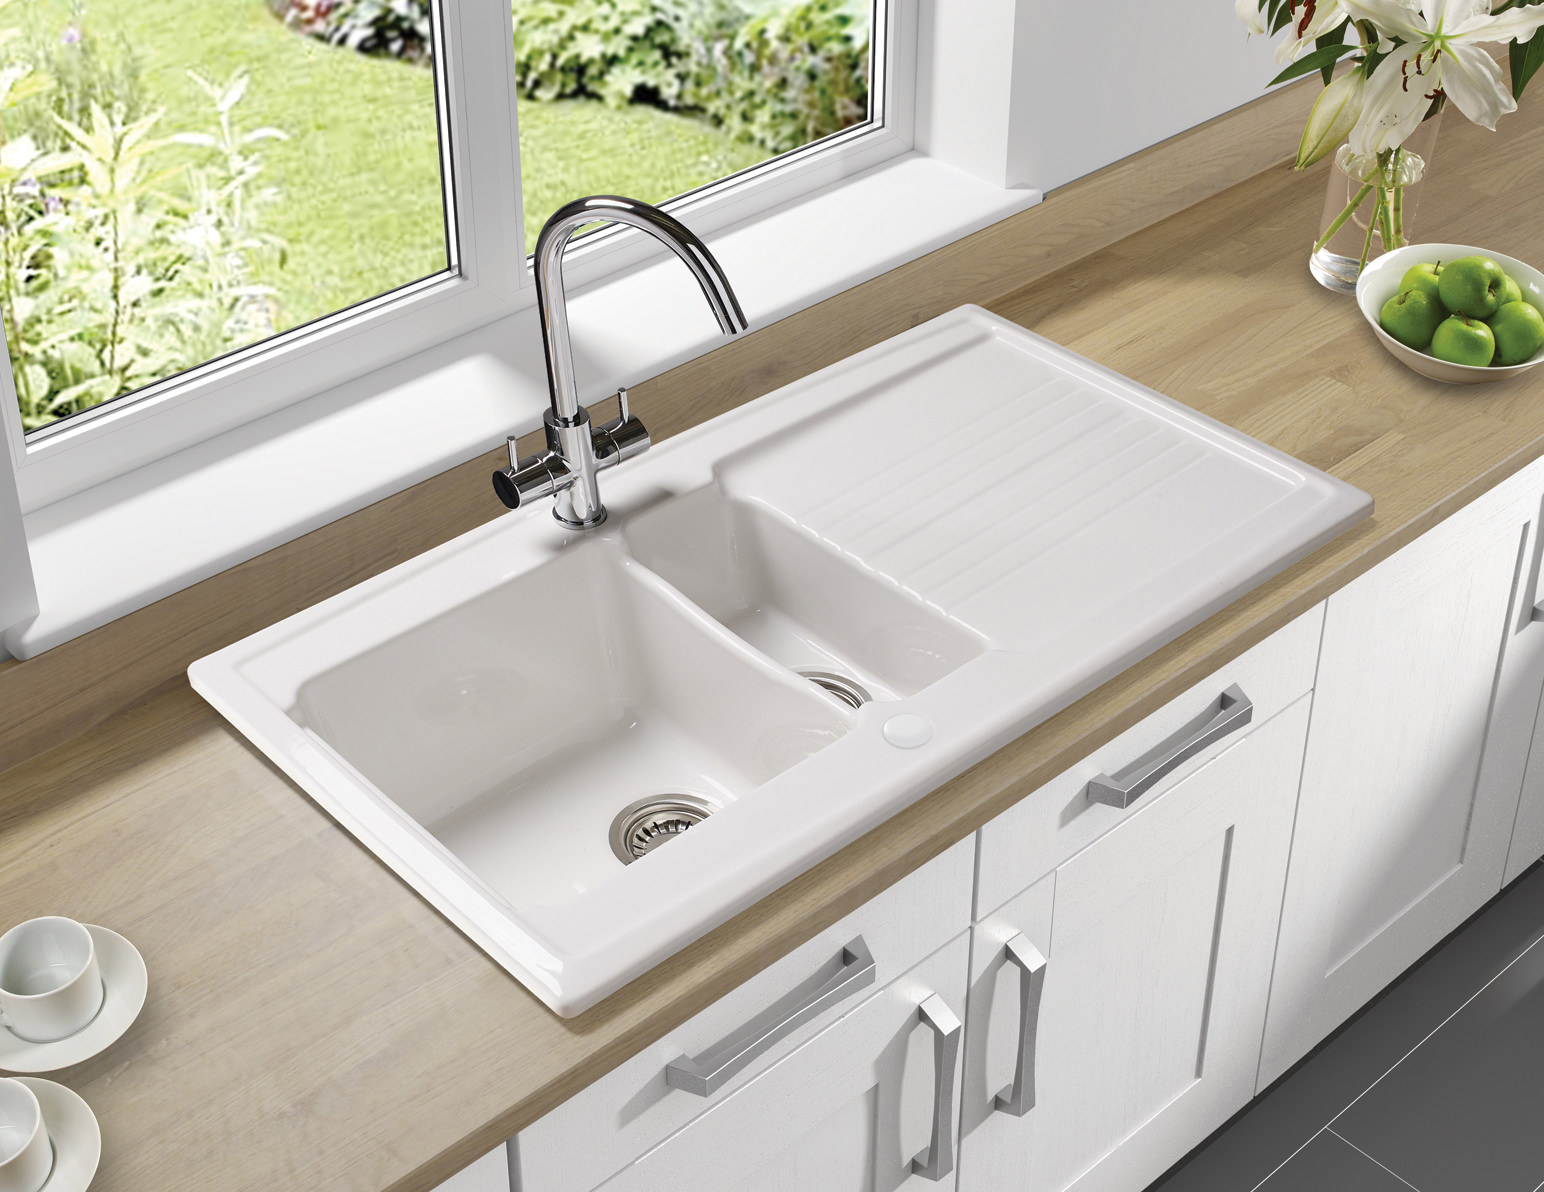 Kitchen Sinks Astracast Equinox 1 5 Bowl White Ceramic Inset Kitchen